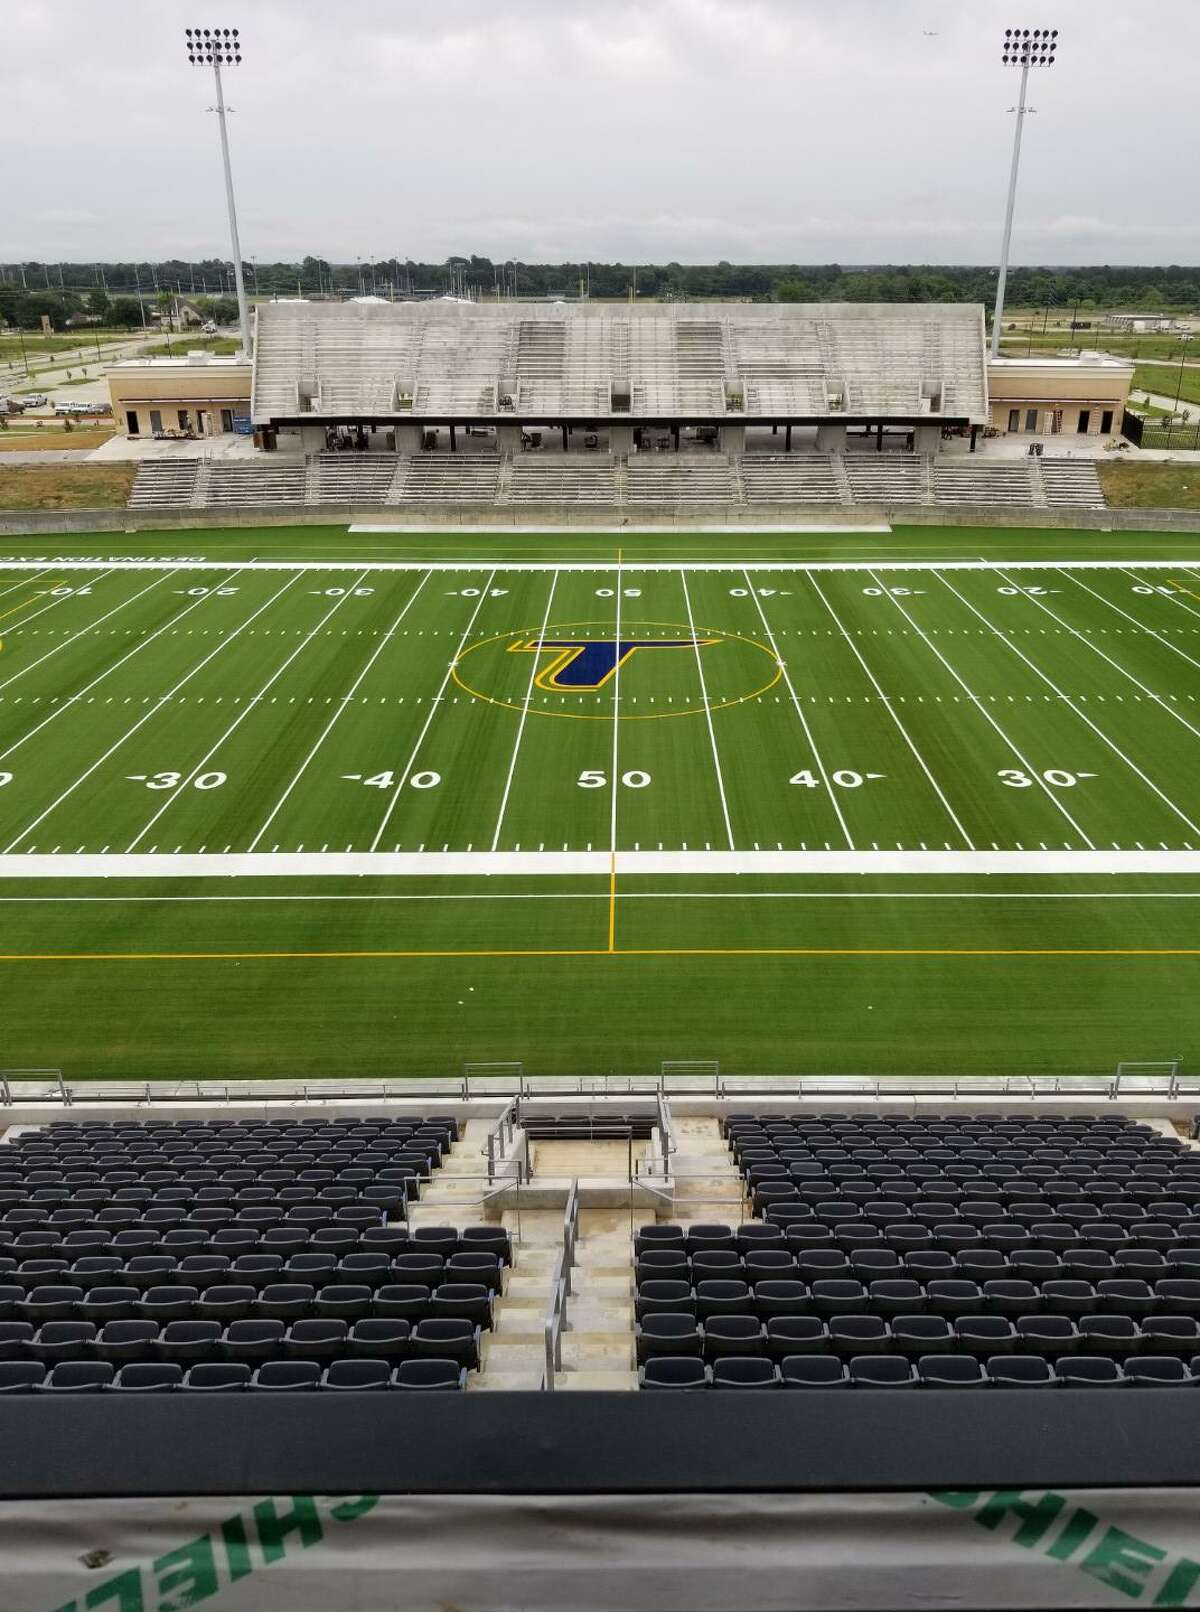 Tomball ISD announced in June that the 41st Annual Patriotic Show and football game between Tomball High School and Tomball Memorial High School will be held on Friday, September 24 at 7 p.m., at the new Tomball ISD Stadium.